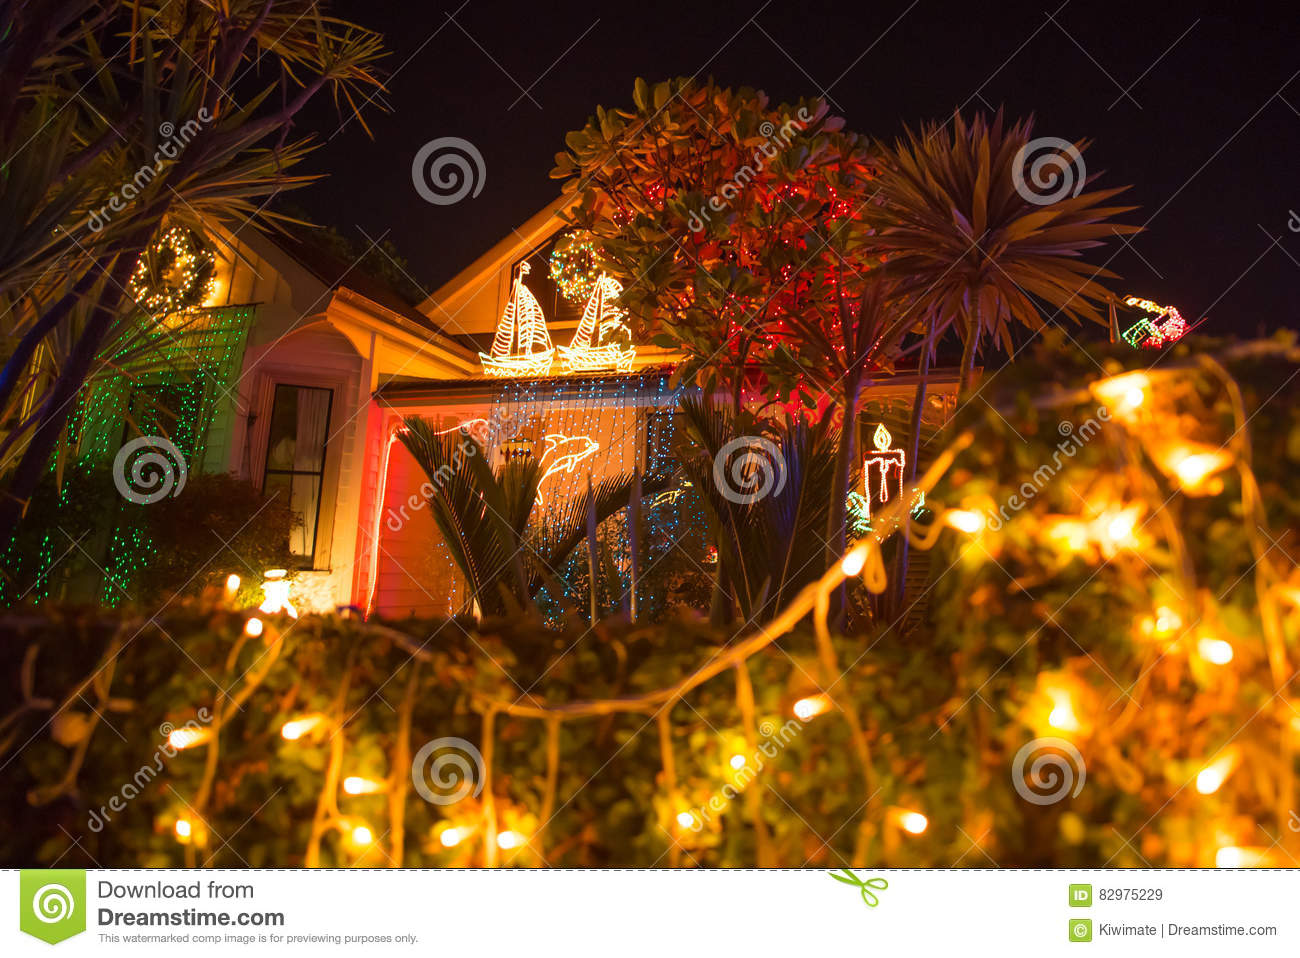 Beautiful Outdoor Christmas Lights Display House Decocation Editorial Stock Image Image Of Evening House 82975229